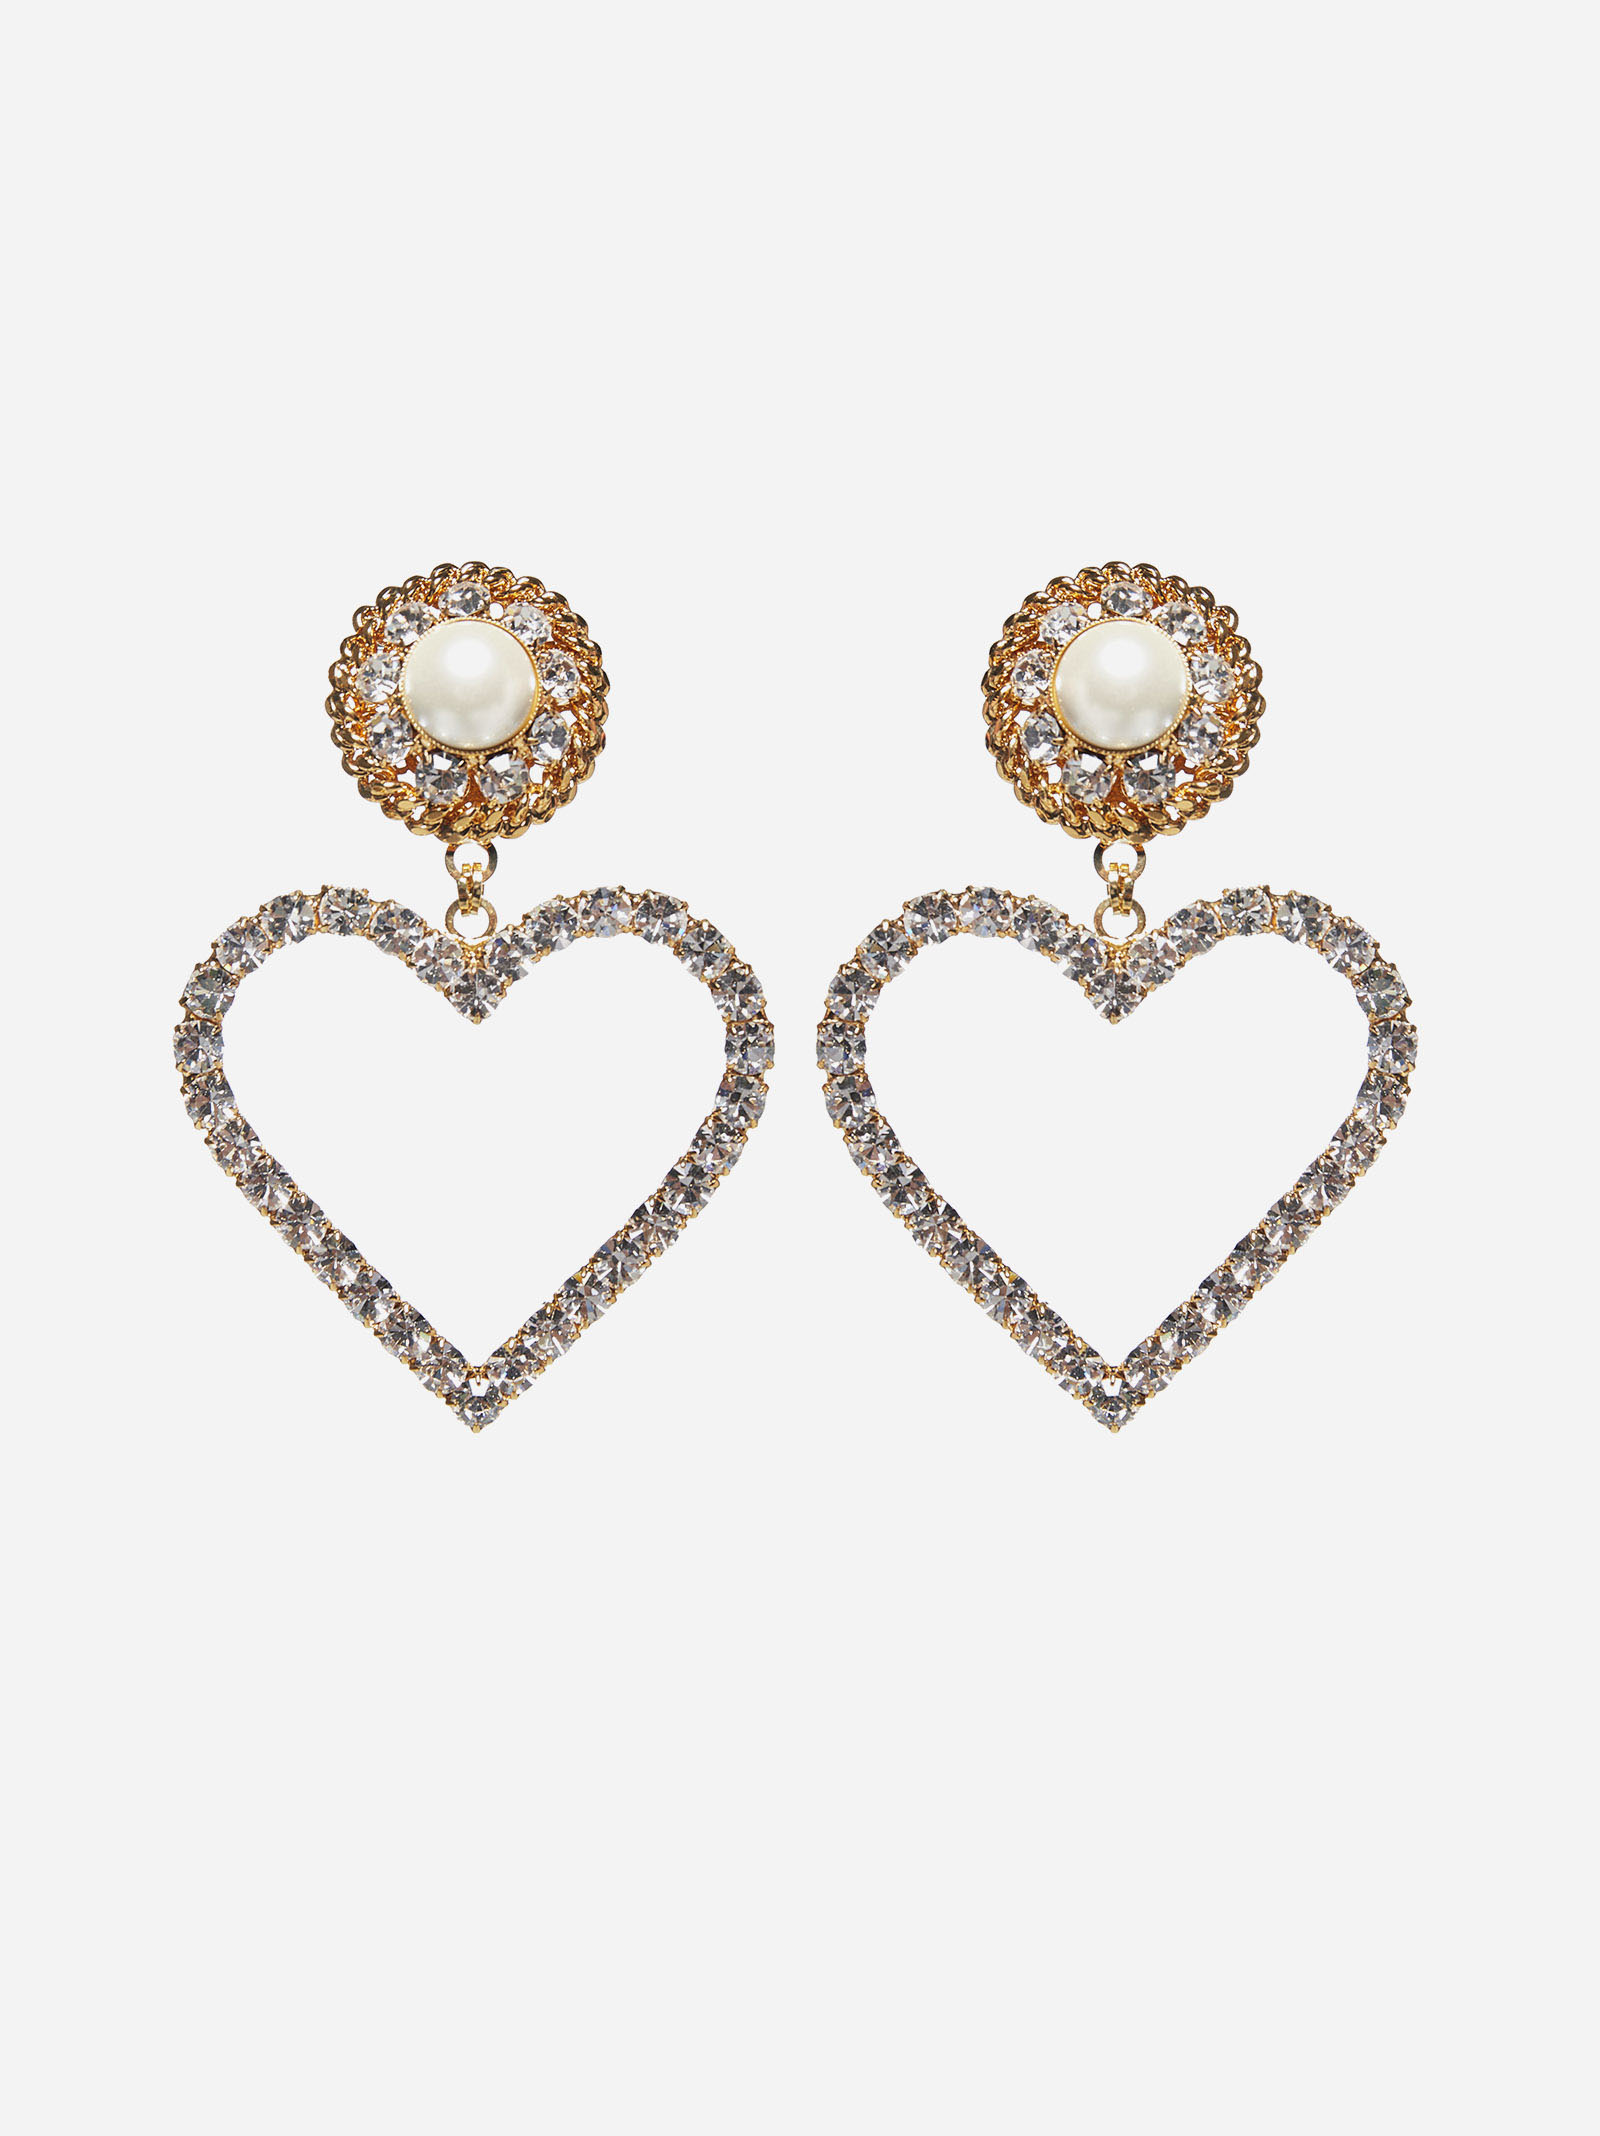 Alessandra Rich PEARL AND CRYSTALS HEART EARRINGS